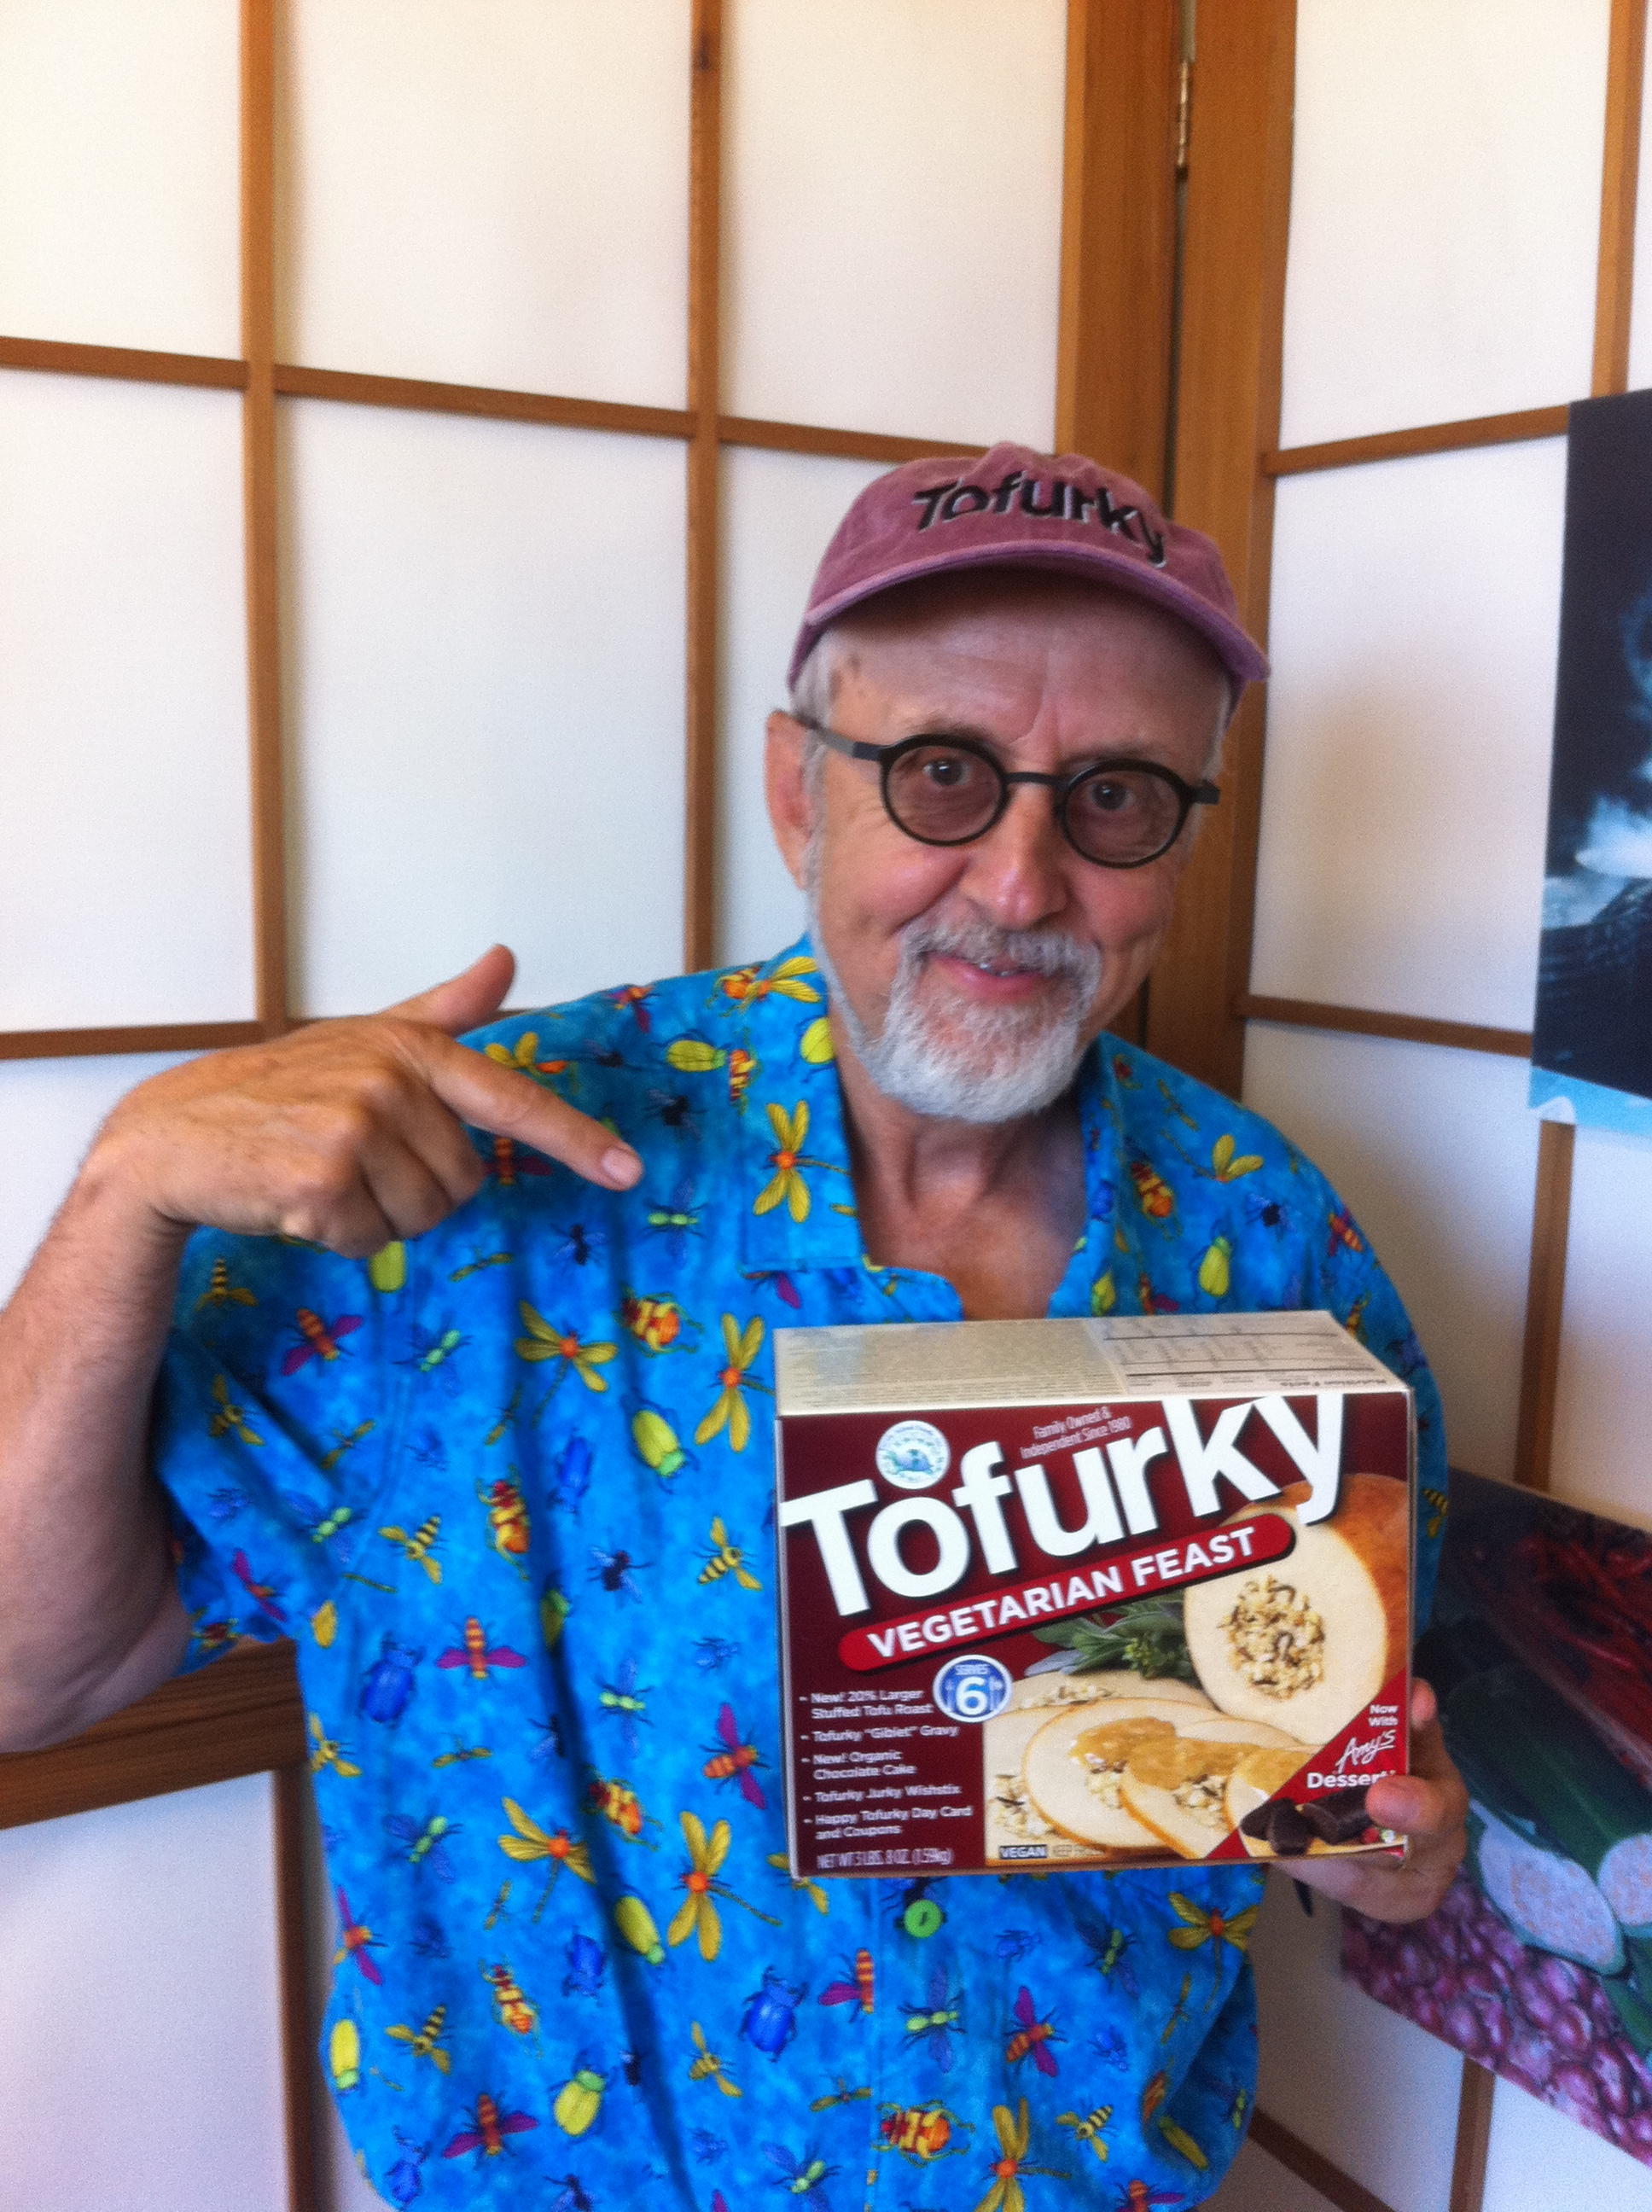 """SETH TIBBOTT - Seth Tibbott founded Turtle Island Foods, dba """"The Tofurky Company"""" in 1980 on $2,500, his life savings from his 8-year career as a teacher/naturalist in the Portland, Oregon public schools. The company's first product, tempeh (a fermented soy bean cake from Indonesia), was made and delivered in small batches to fledgling natural food stores in Portland and the west coast.The first 9 years in business were a financial struggle. America was not quite ready for tempeh yet and Seth's take-home pay averaged $290 for those years. Living the dream but losing his shirt, Seth rented four trees in 1984 near the tempeh shop for $25.00 per month and built a 3-story tree house in which he lived for the next 7 years.In 1995, the company's fortunes changed with the introduction of the first Tofurky roasts at Thanksgiving. 500 roasts were sold that year throughout the Pacific Northwest but soon a larger, national market came calling.Today, 38 years after its founding, Tofurky is still a family owned, independent enterprise and Seth is the company's Chairman and stepson, Jaime Athos is now CEO, carrying the dream forward. Tofurky is a model of """"slow growth"""" and is unique for never having any equity investment except for $17,000 from Seth's brother Bob in 1989. Today, Tofurky products are sold in over 21,000 stores worldwide on 6 of 7 continents and are made in a new eco production plant built to LEED Platinum standards. Seth has been overseeing Tofurky sales in the export market for the past 4 years which has afforded him the opportunity to witness firsthand the current explosion of veganism throughout the planet."""